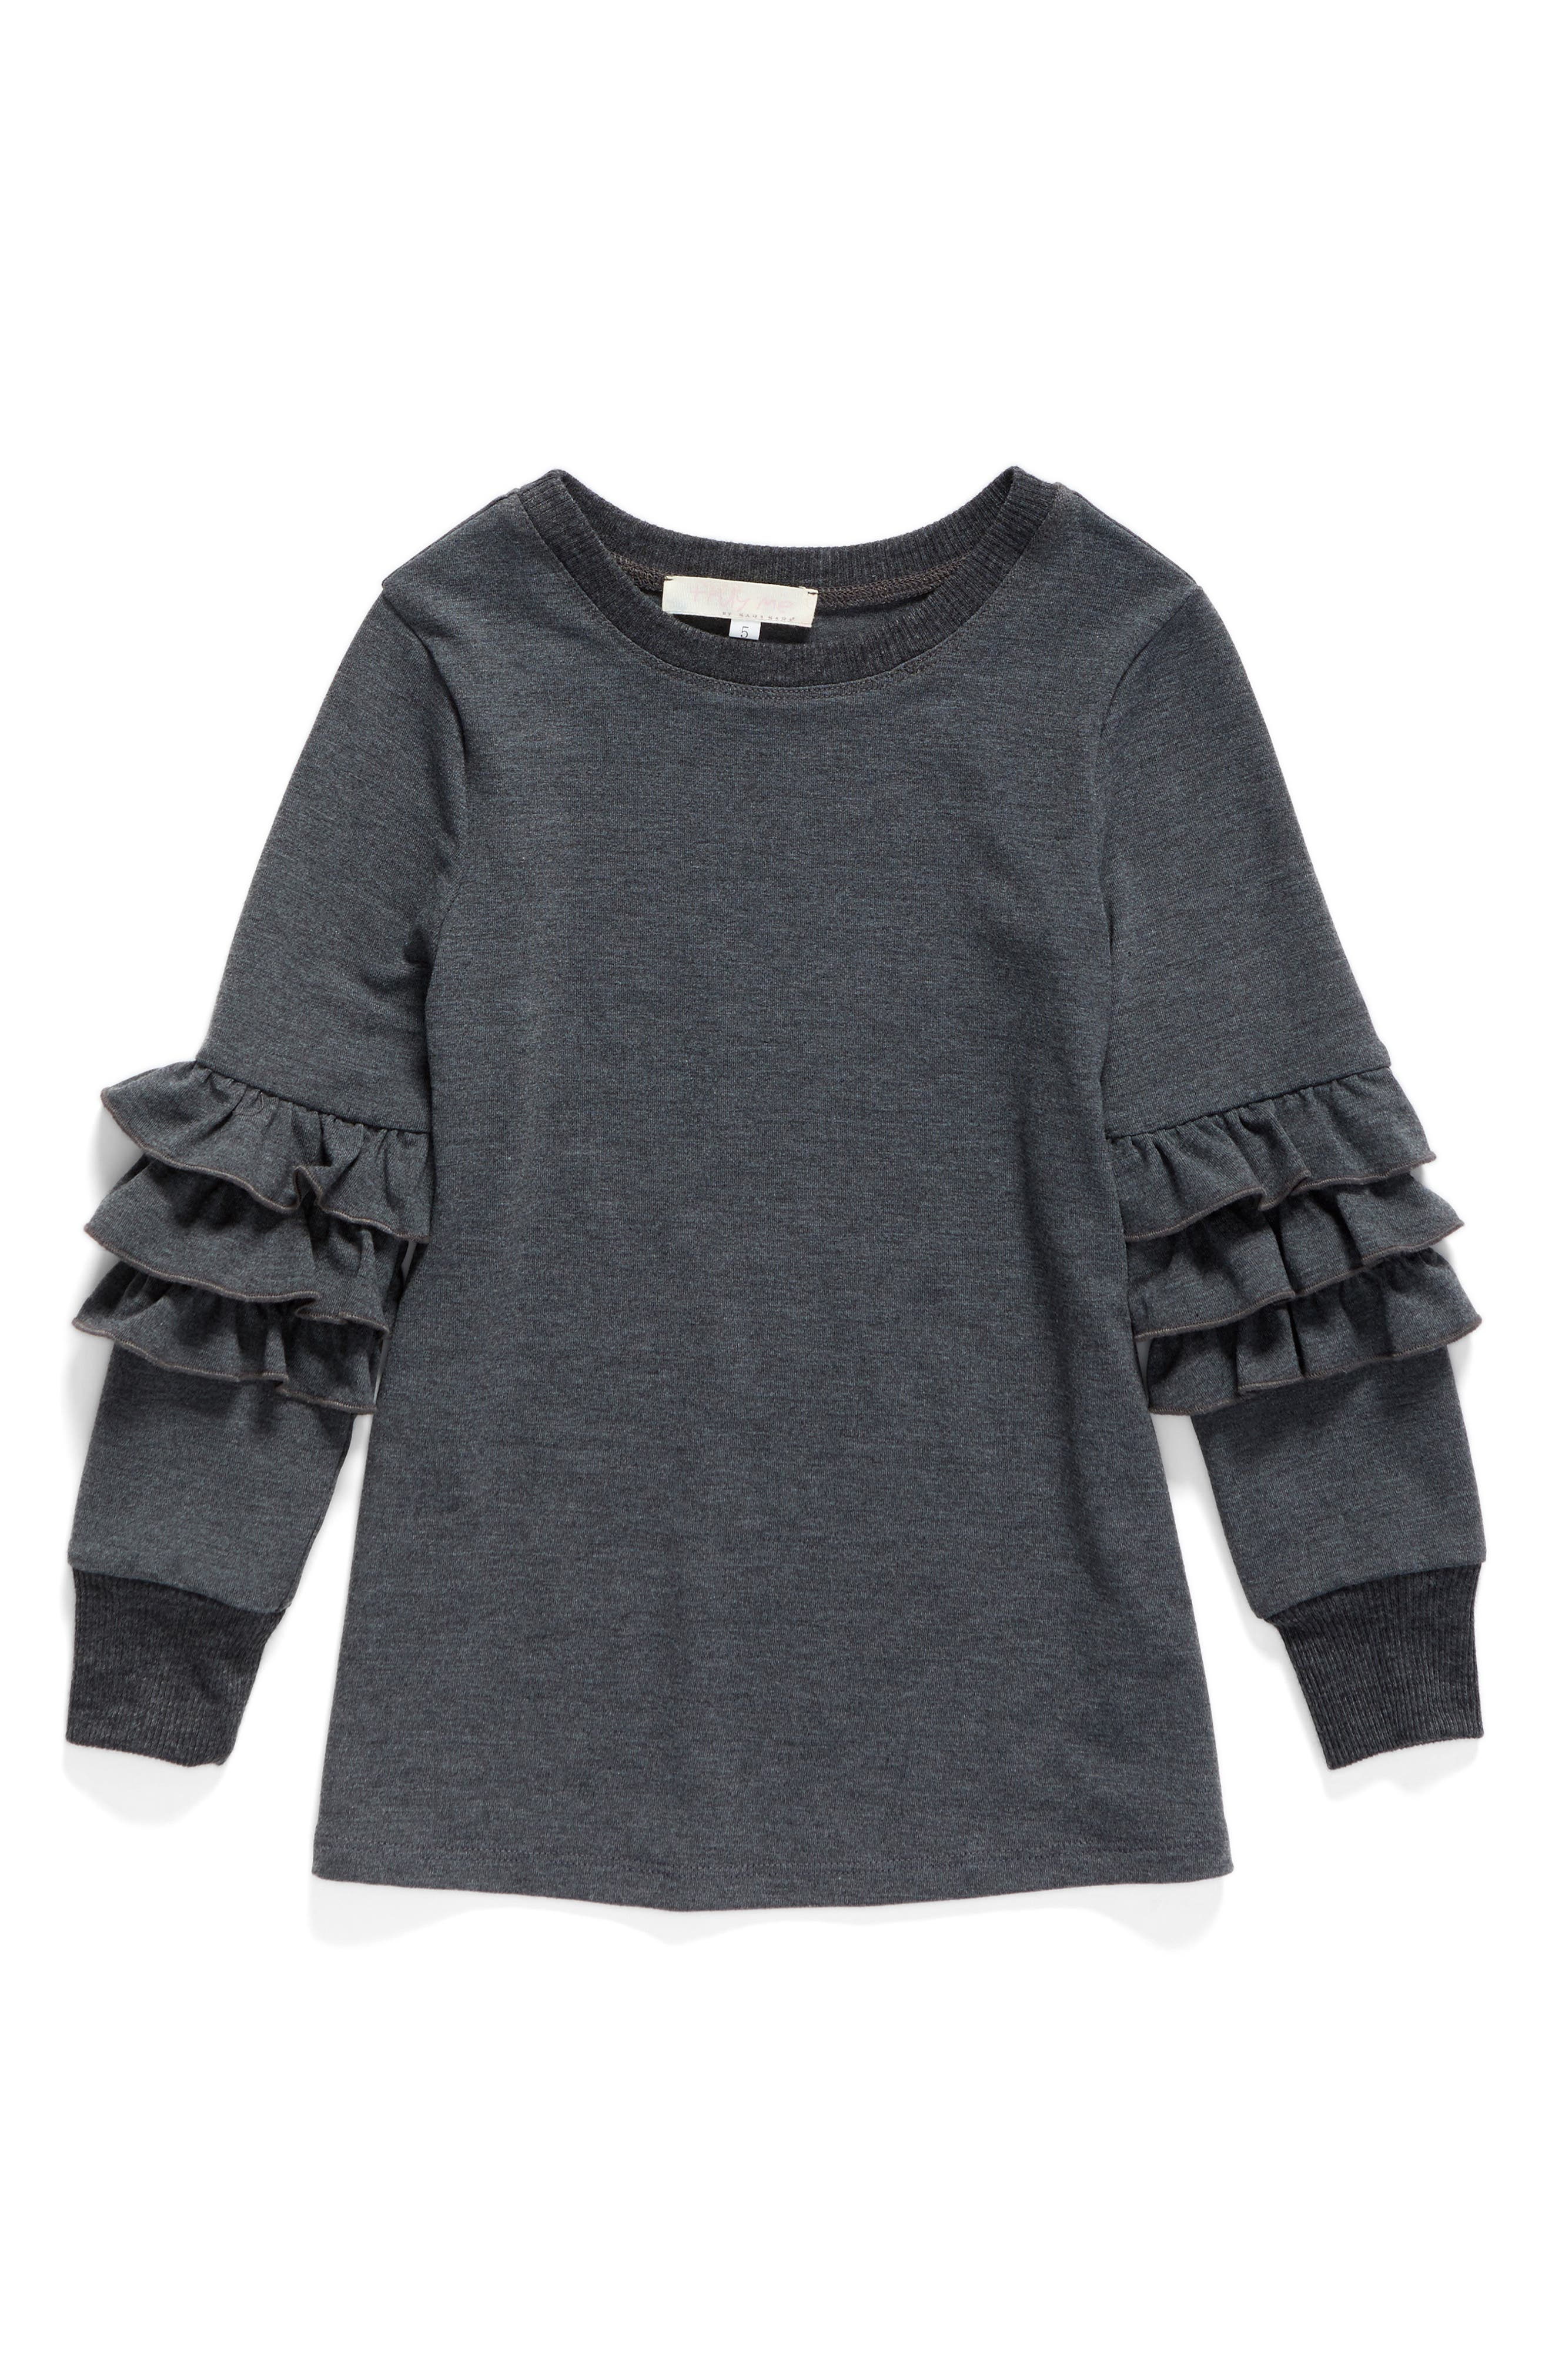 Truly Me Ruffle Sleeve Sweatshirt (Toddler Girls & Little Girls)